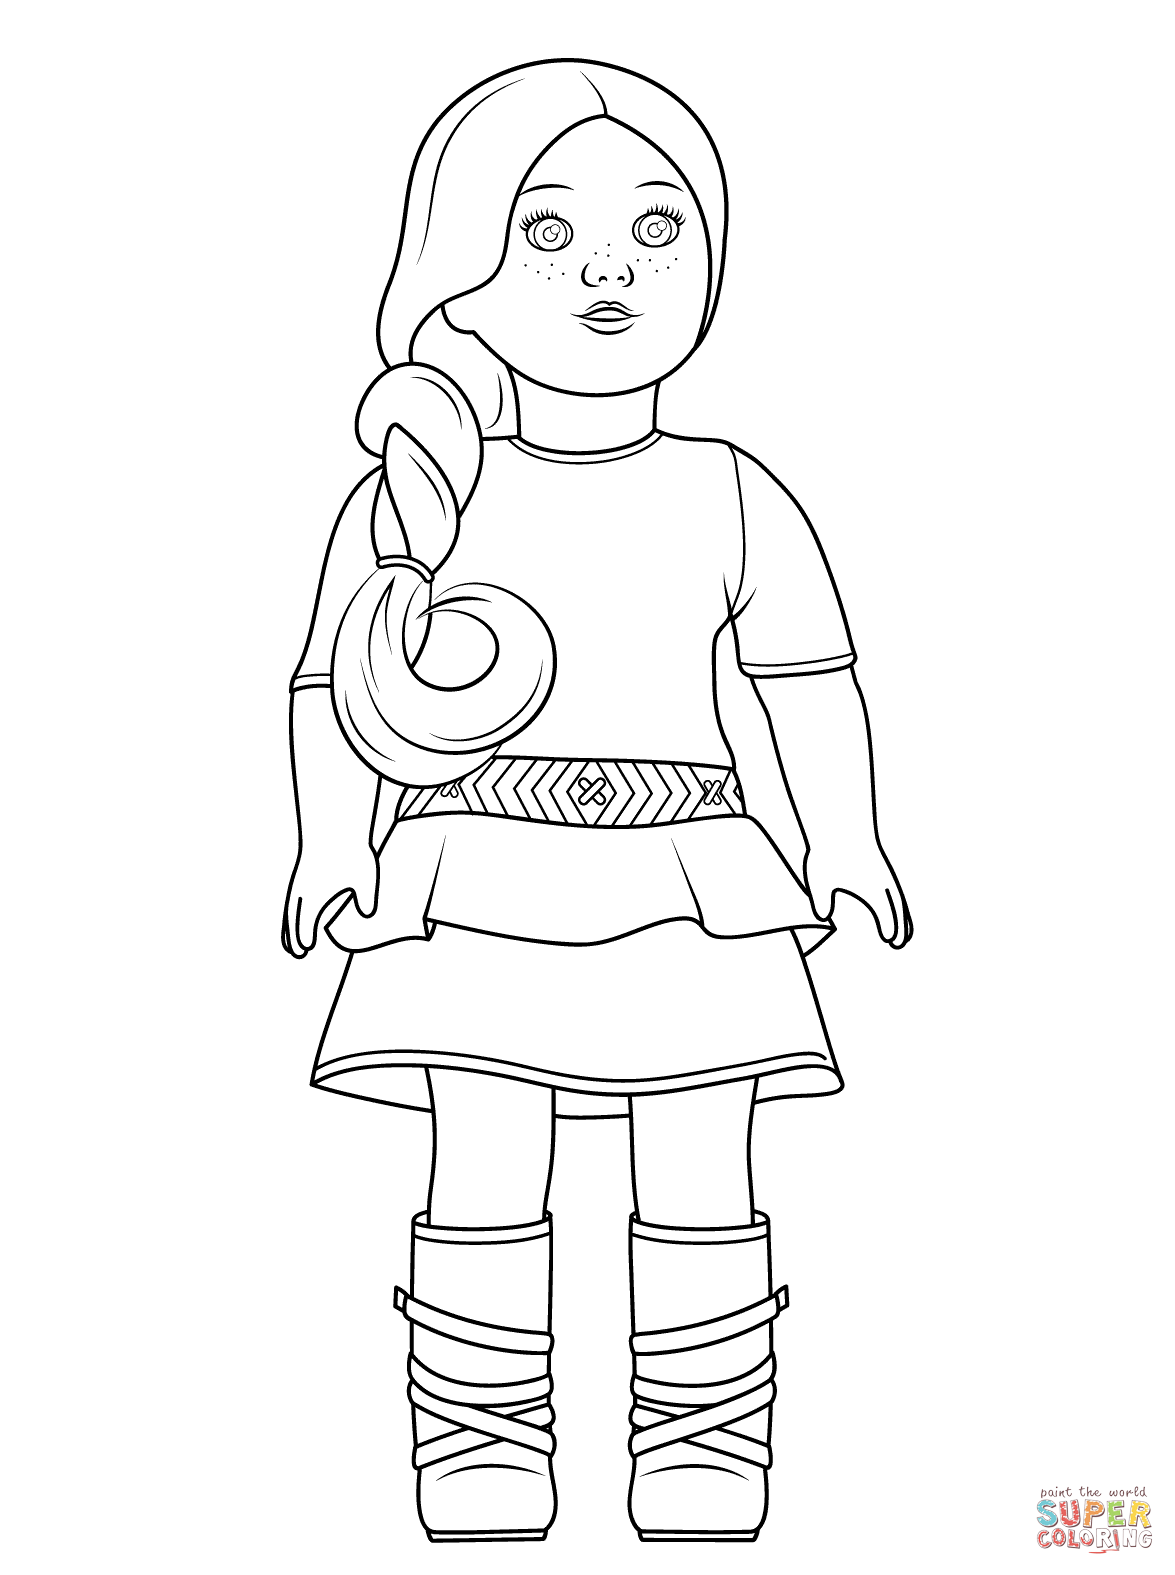 american girl doll coloring pages - Print Color Pages